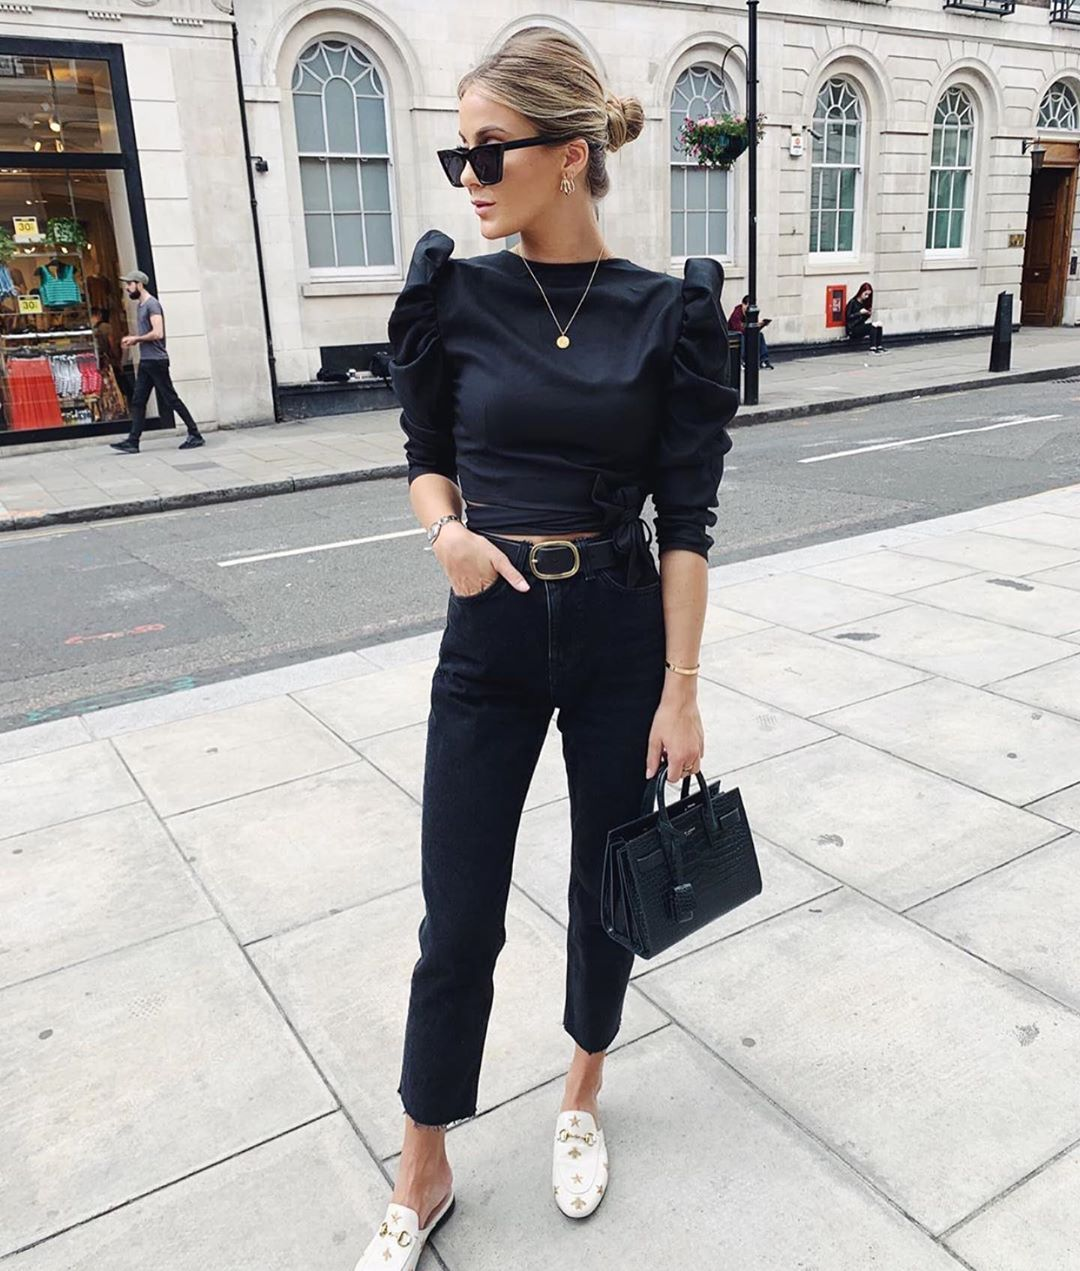 This Influencer Proves The Power of an All Black Outfit